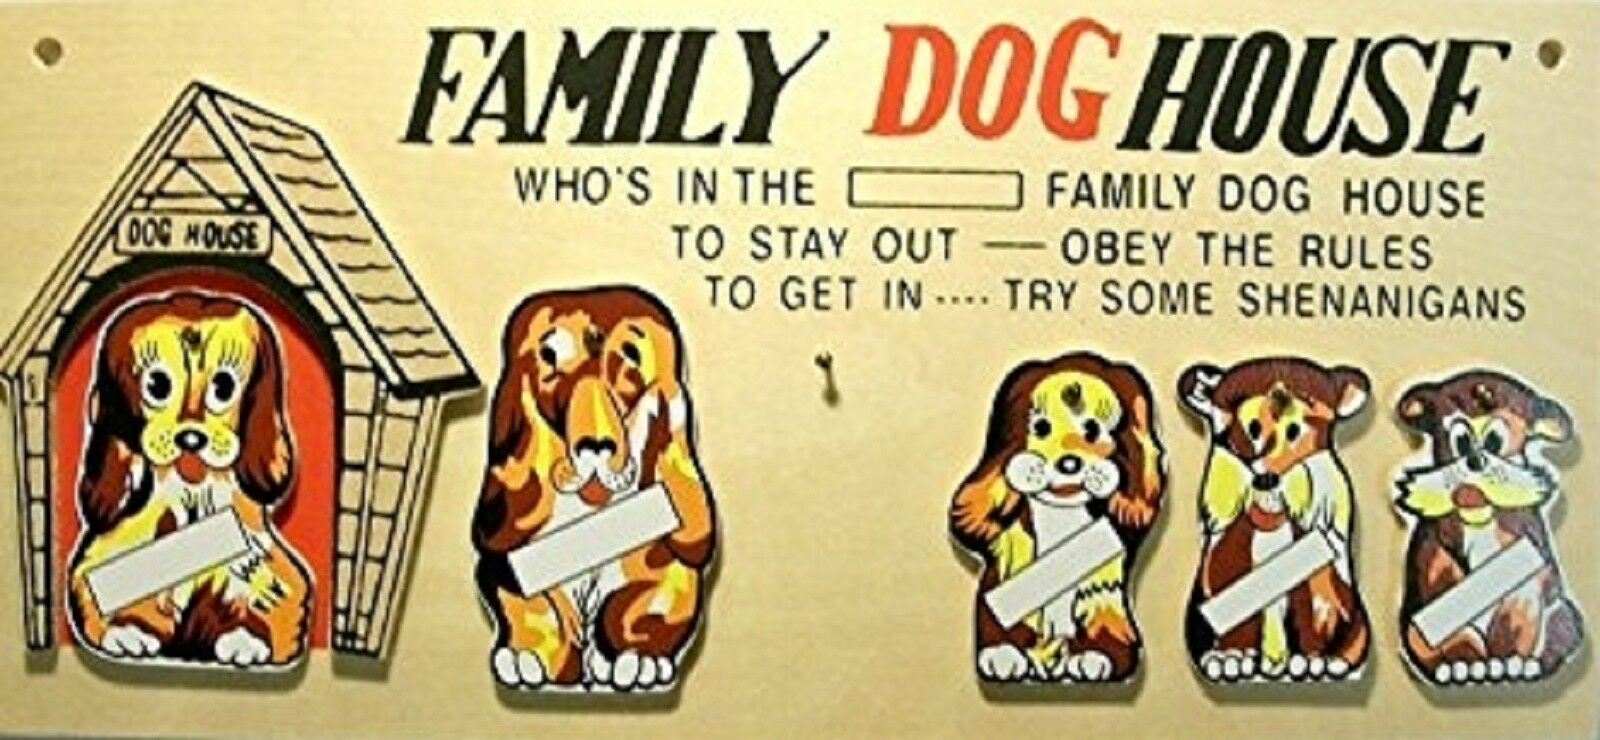 FAMILY DOG HOUSE Wall Plaque - $10.00   PicClick